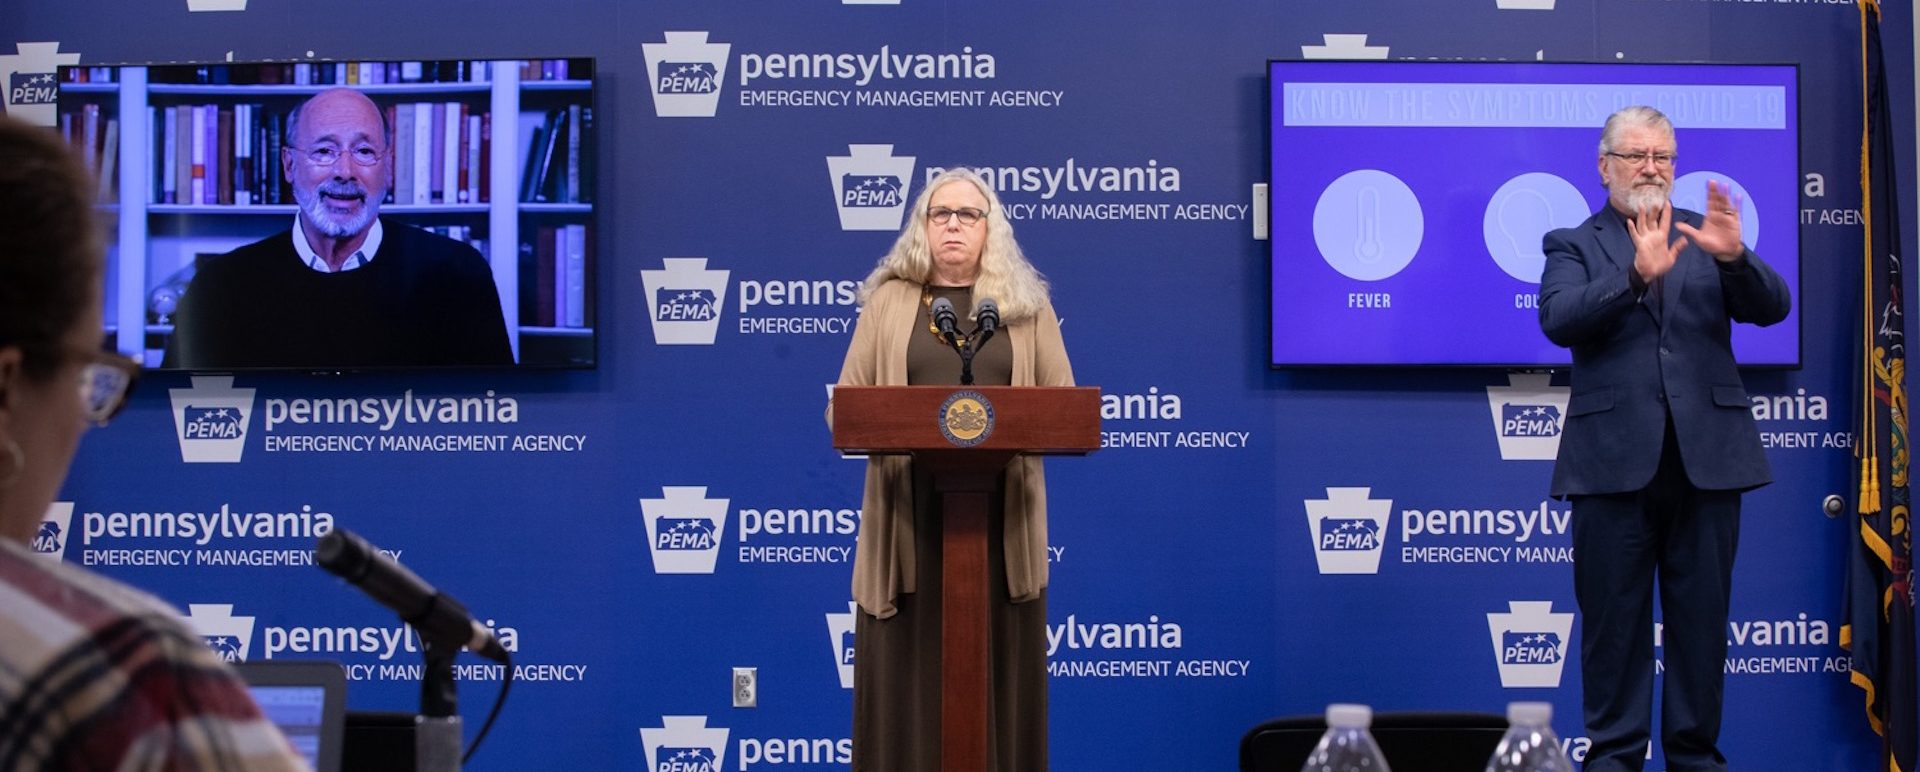 Secretary of Health Dr. Rachel Levine speaking at the virtual press conference in Harrisburg on March 20, 2020.